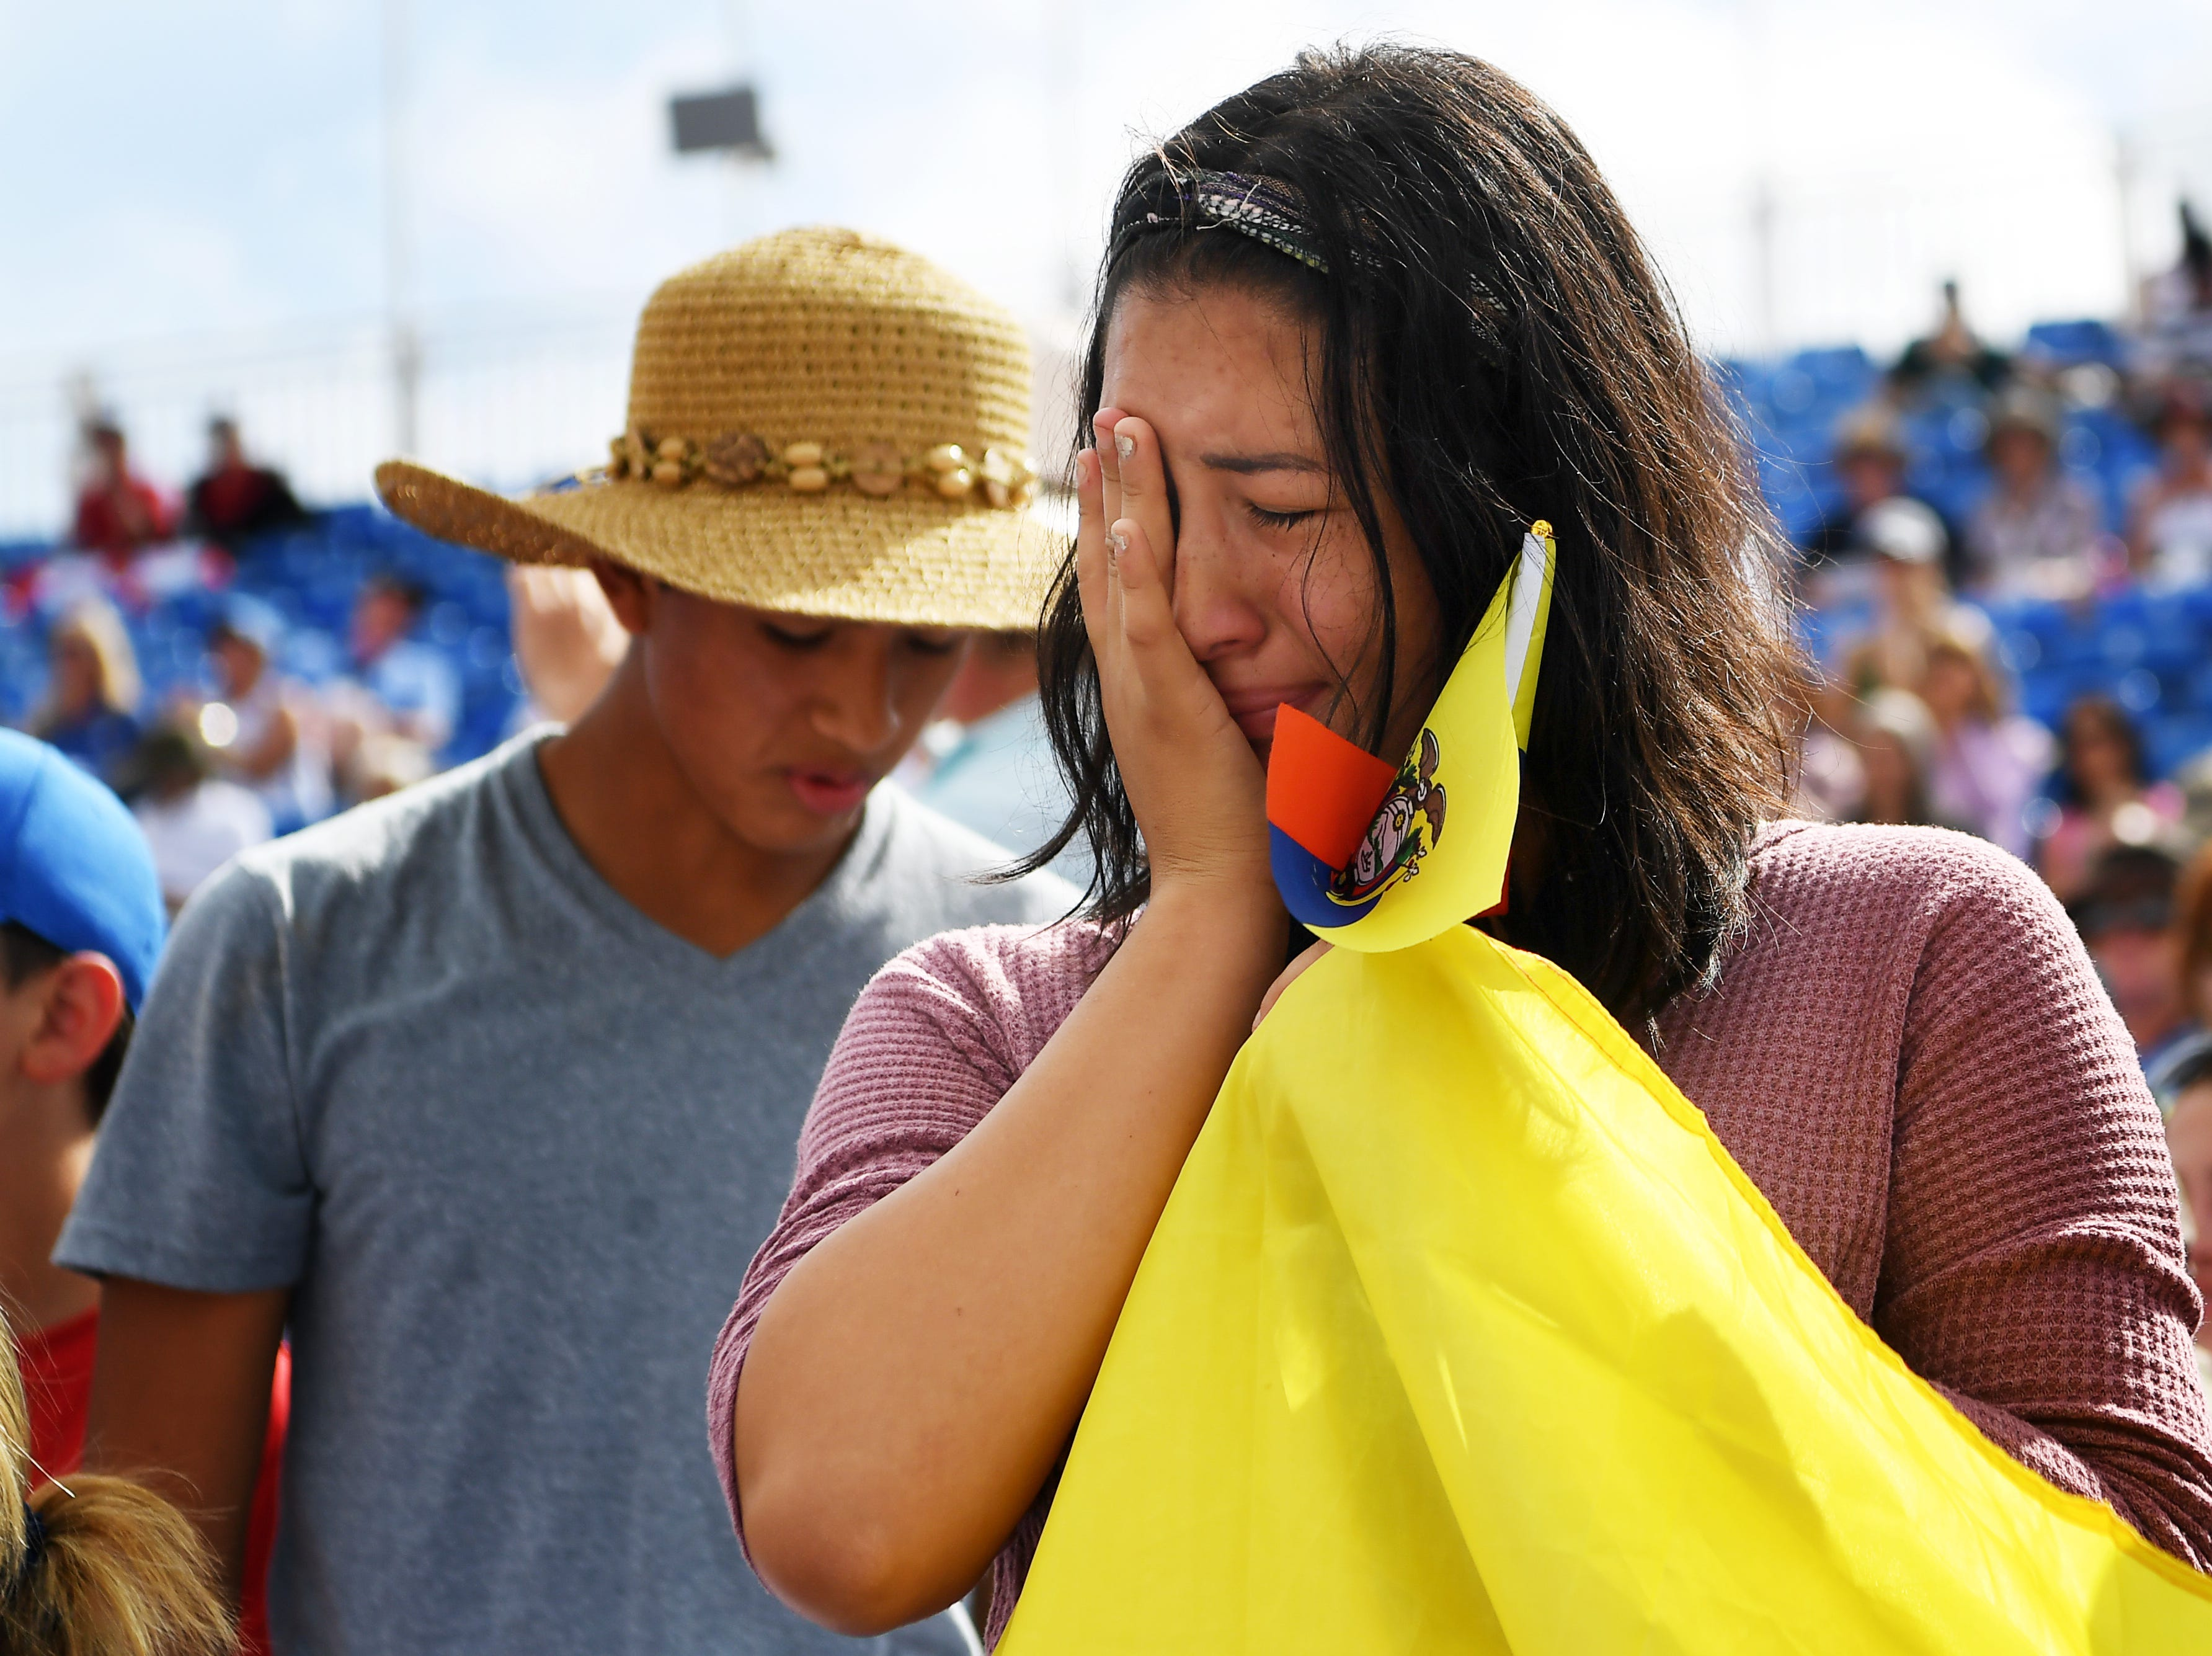 Francis Mendoza, 17, holds Ecuadorian flags and cries as her father, Julio, finishes his dressage competition at the World Equestrian Games in Tryon Sept. 13, 2018.